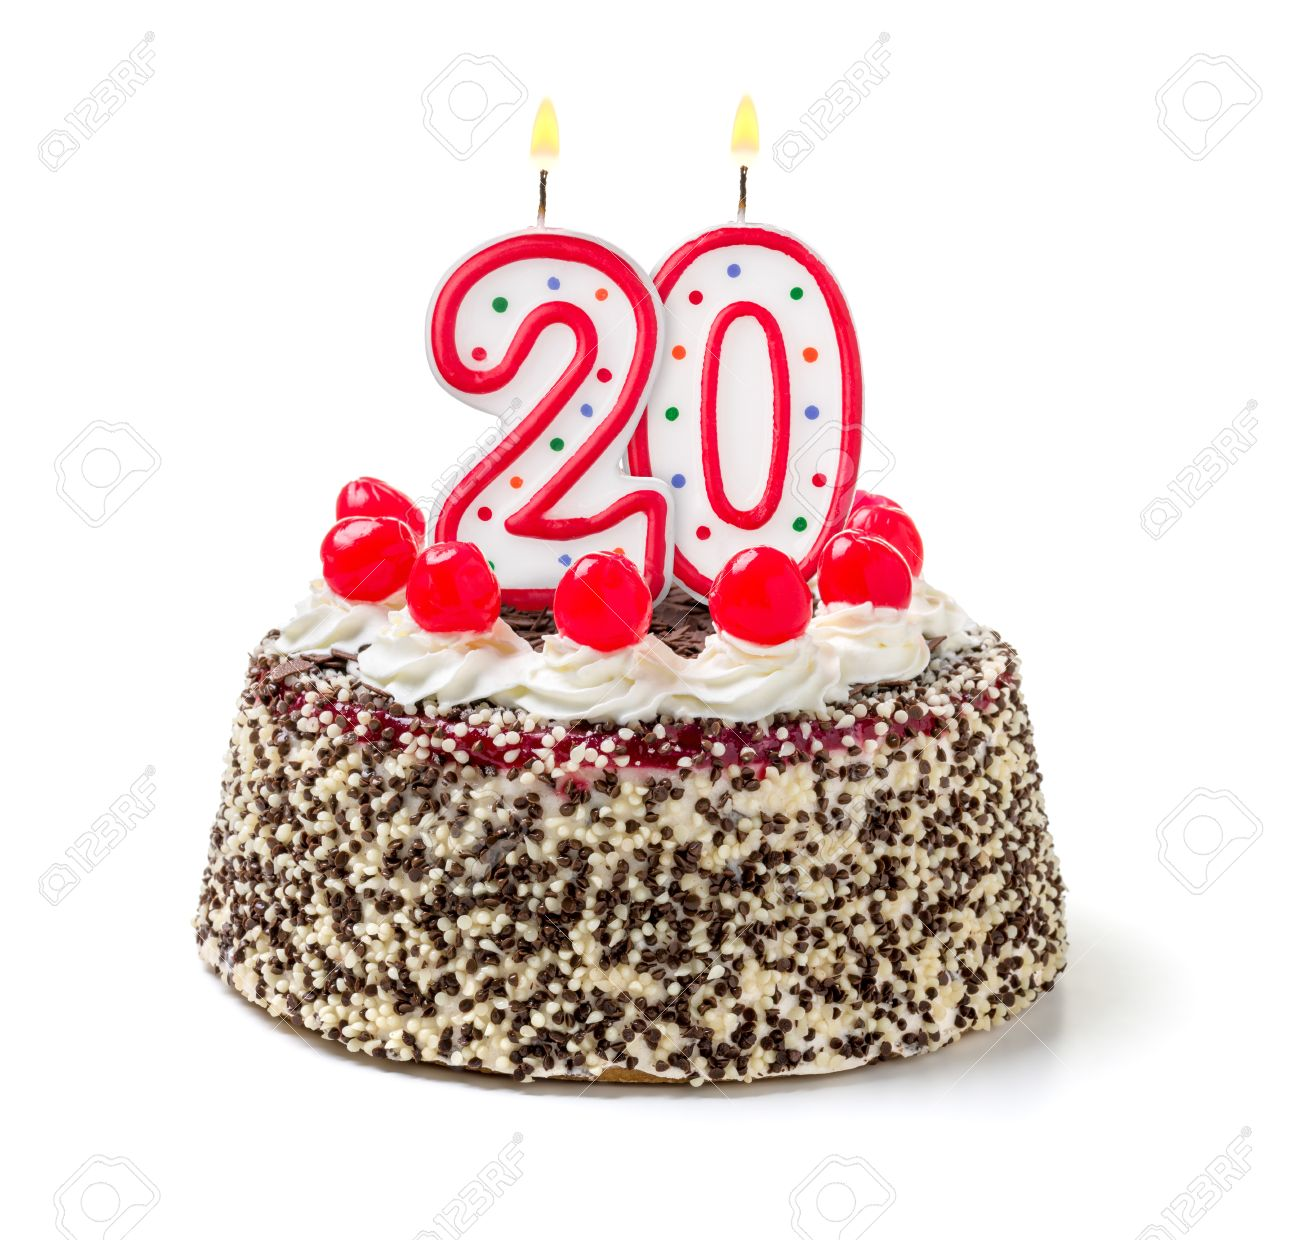 Marvelous Birthday Cake With Burning Candle Number 20 Stock Photo Picture Funny Birthday Cards Online Inifodamsfinfo